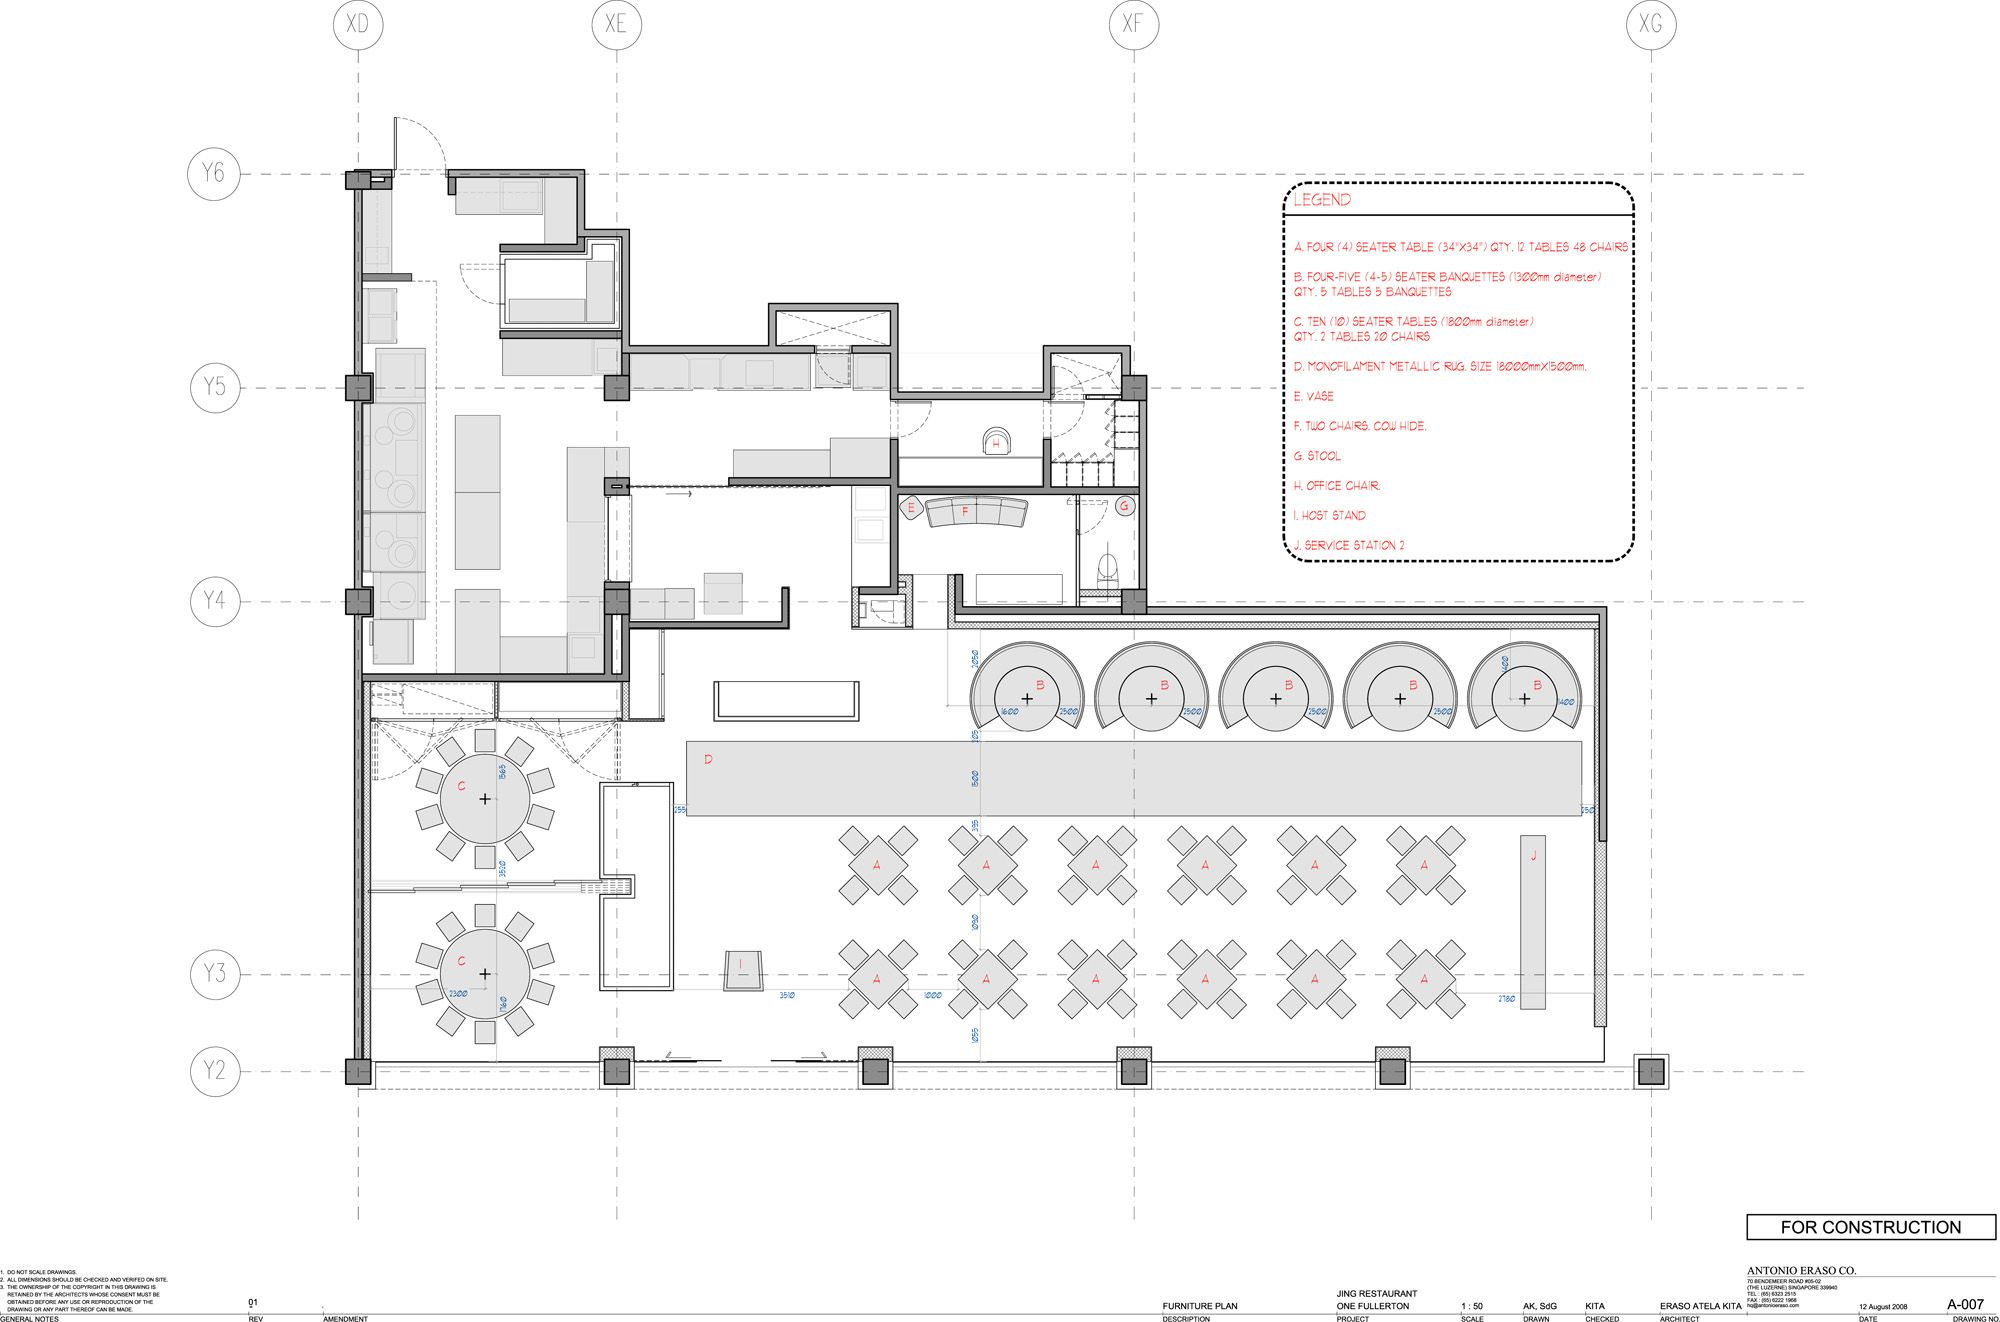 Restaurant Kitchen Area Floor Plan jing restaurant / antonio eraso | restaurants and ceiling